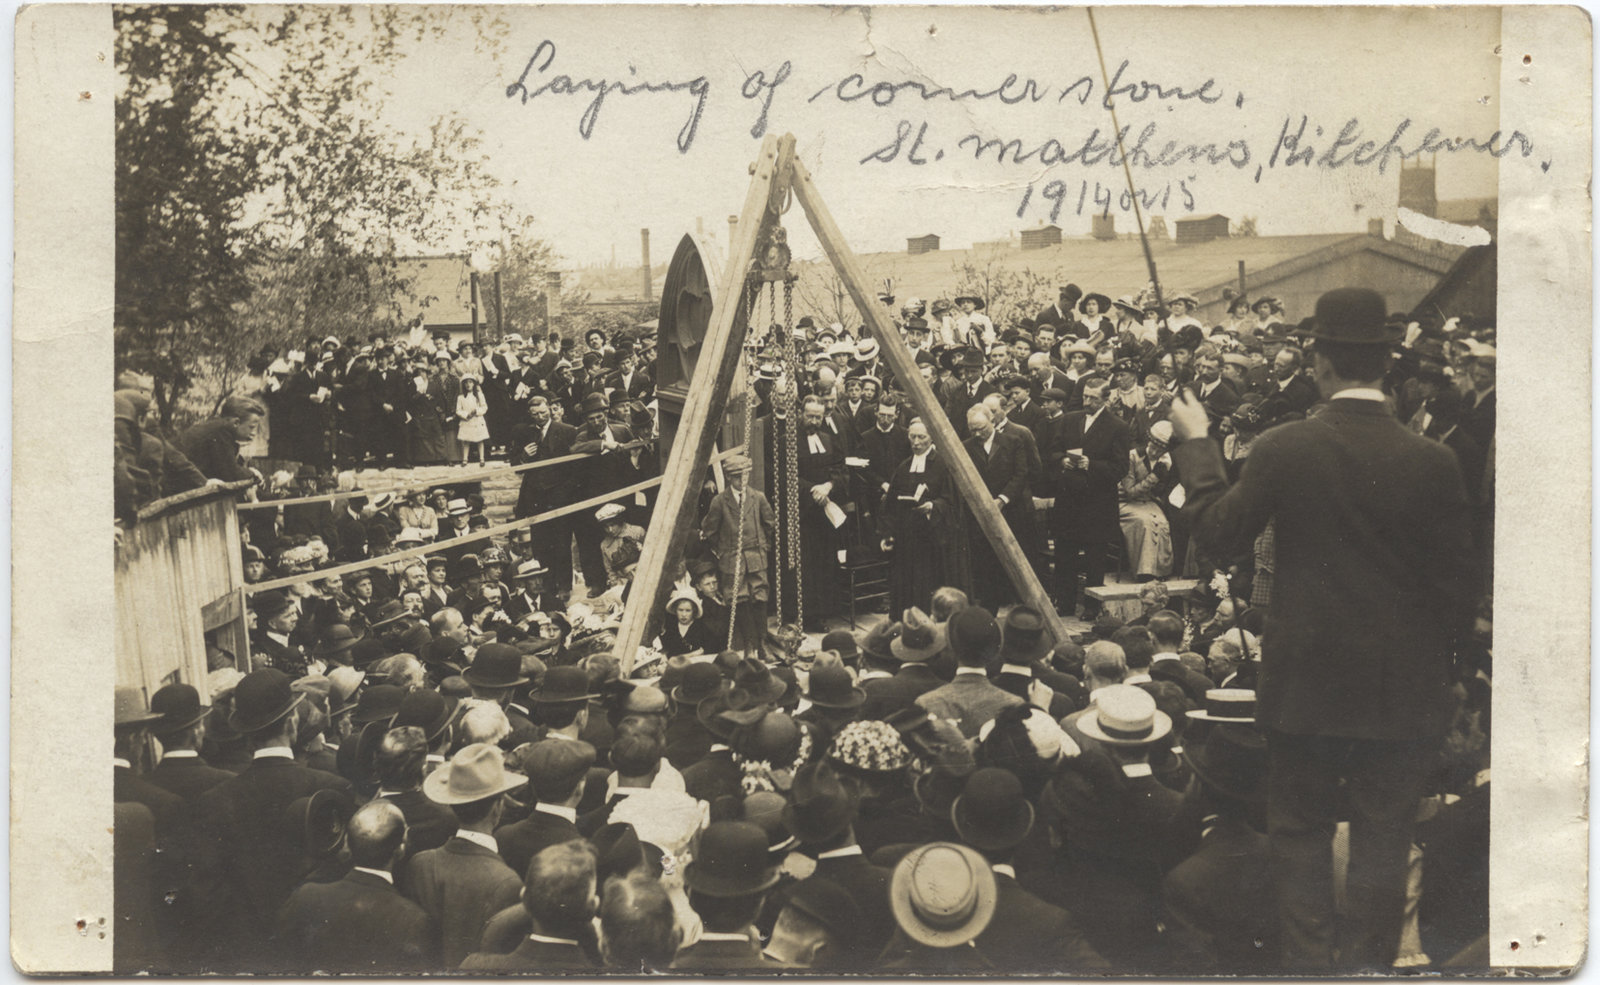 Laying of Cornerstone at St. Matthew's Lutheran Church, Kitchener